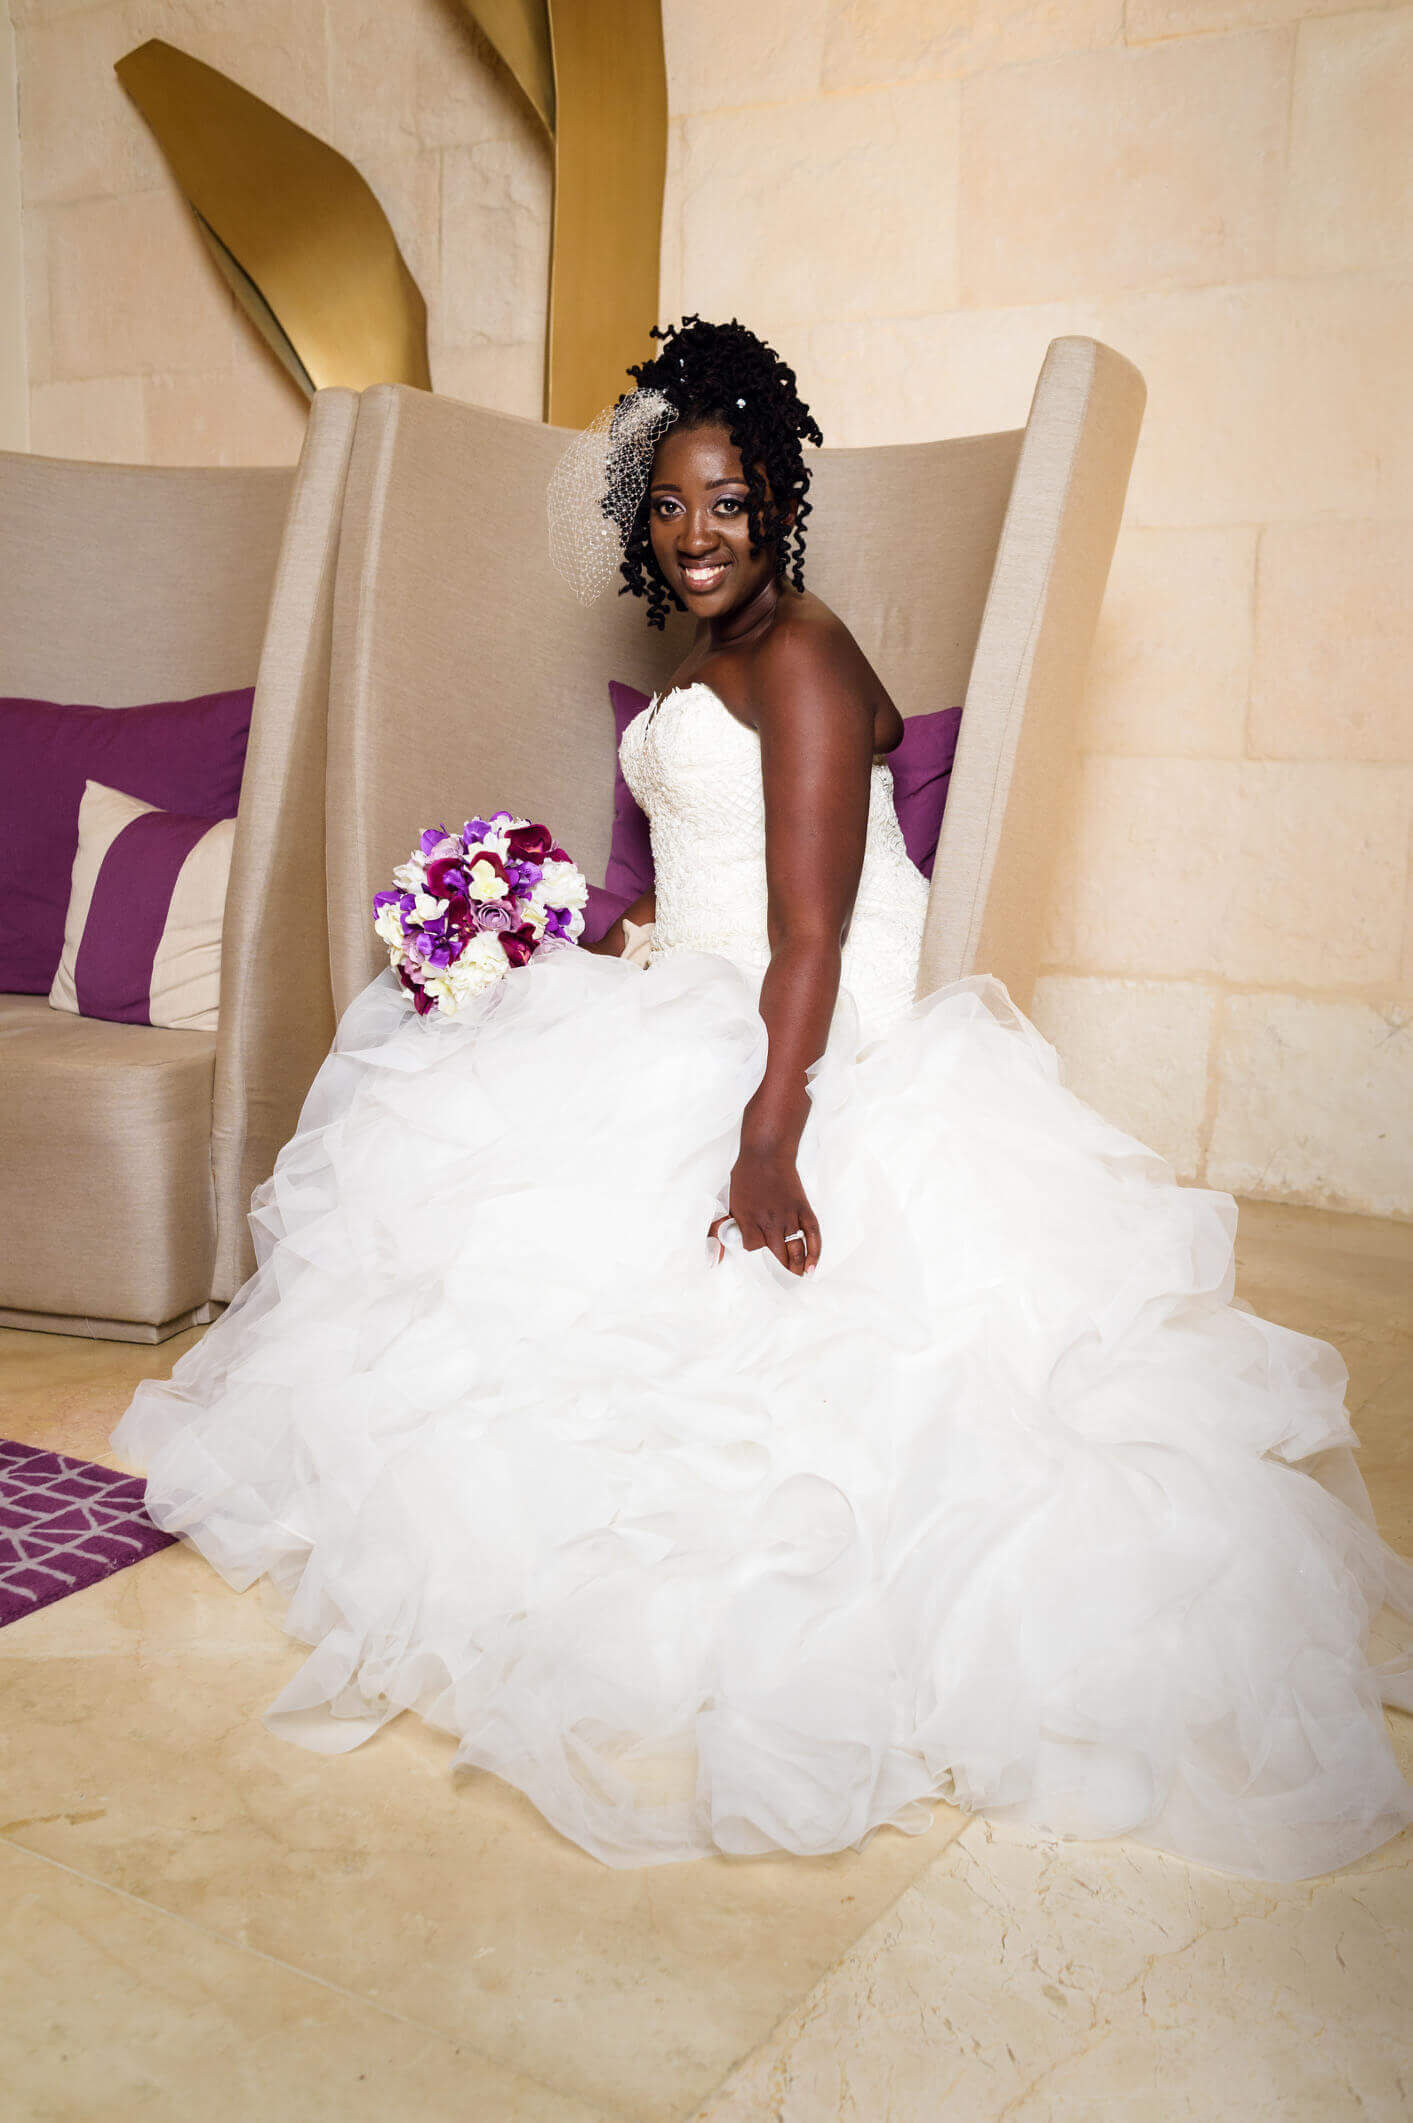 jamellah-how-to-plan-a-destination-wedding-in-montego-bay-jamaica-royalton-blue-waters-black-destination-bride-destiland-desti-guide-to-destination-weddings-beautiful-bride.jpeg